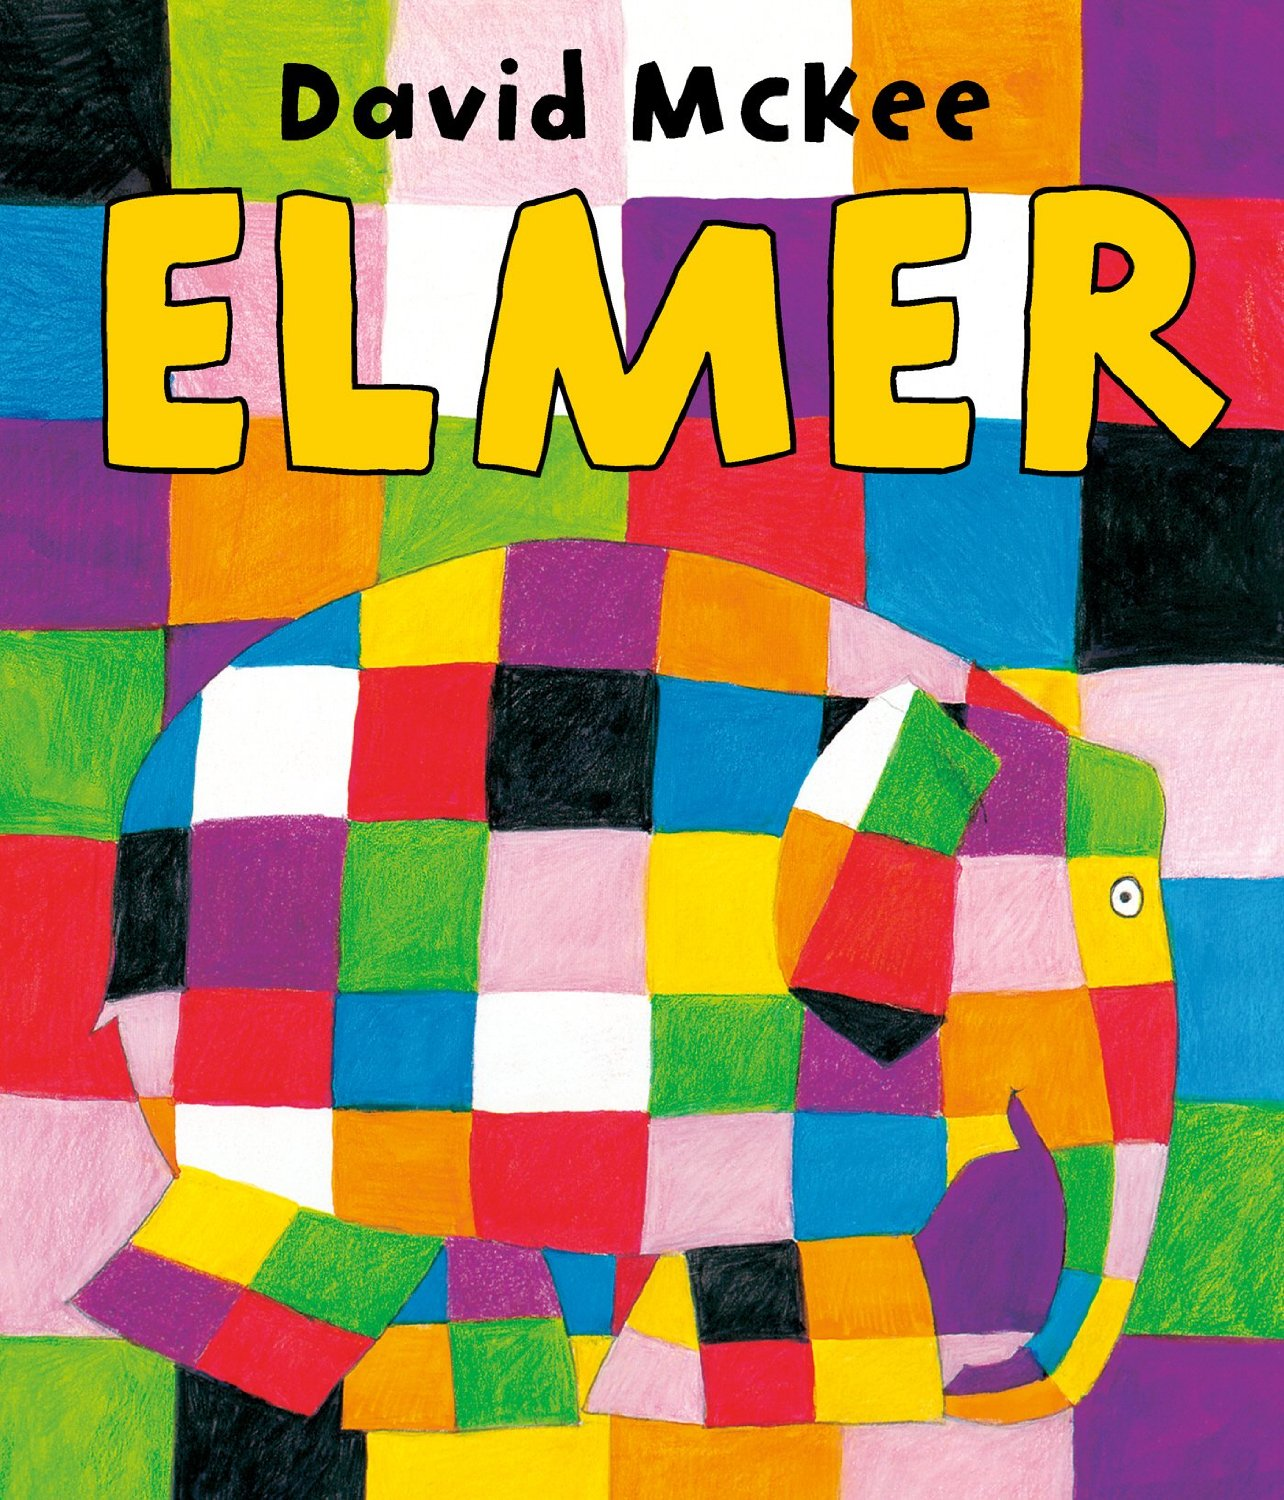 Our Summer Book Exchange Fun With Elmer The Elephant